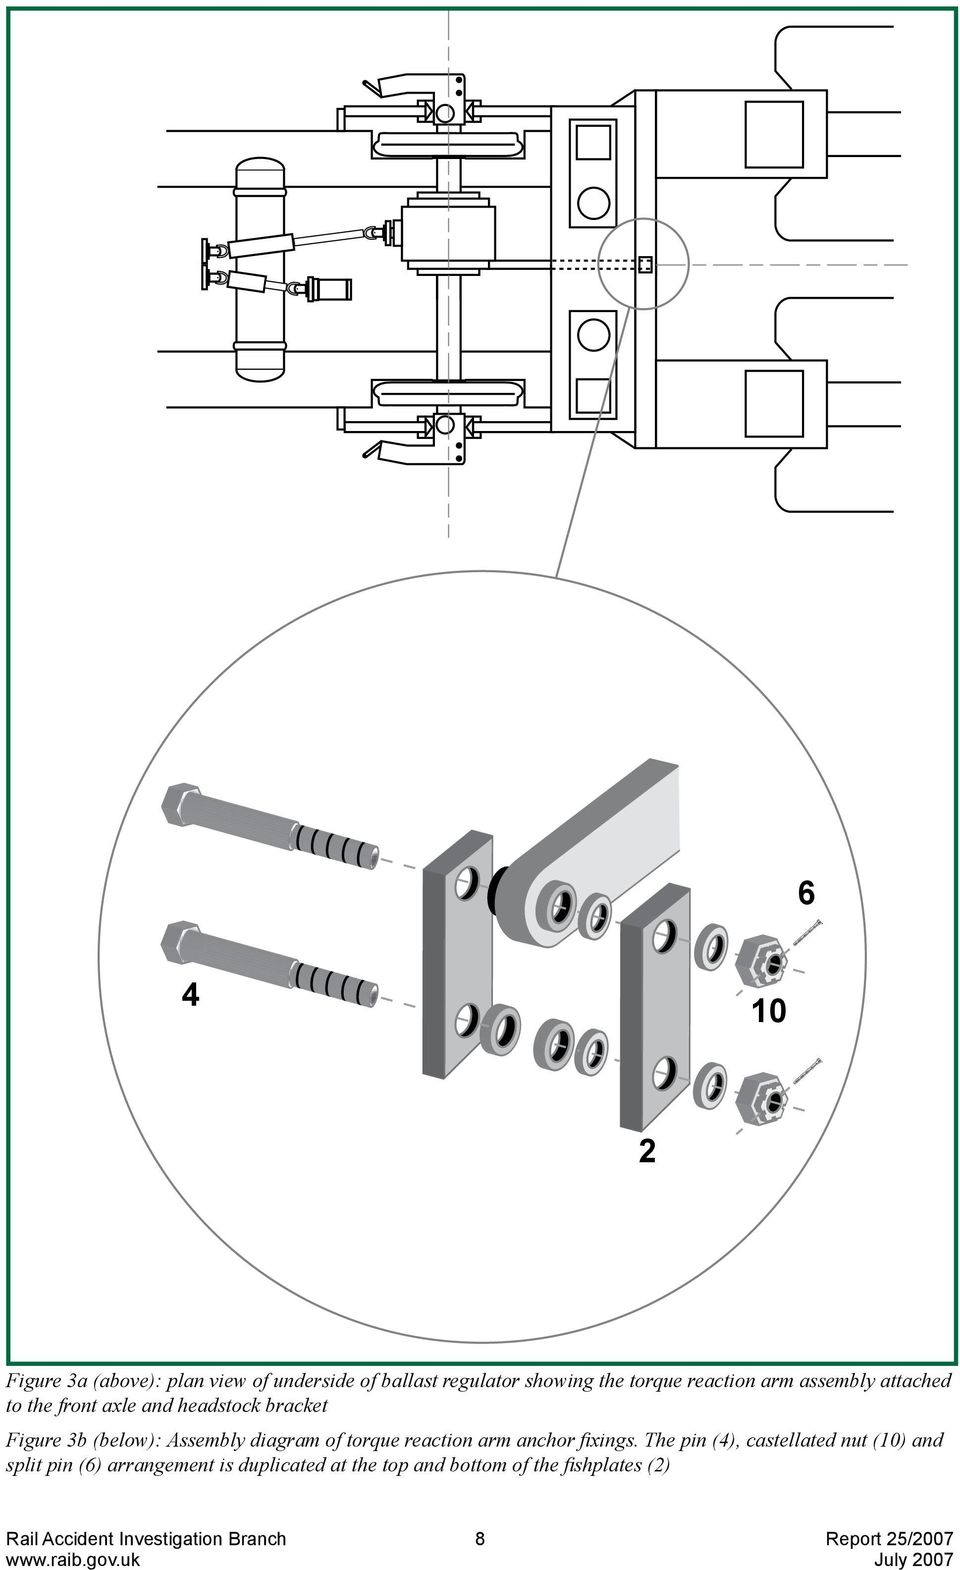 Assembly diagram of torque reaction arm anchor fixings.